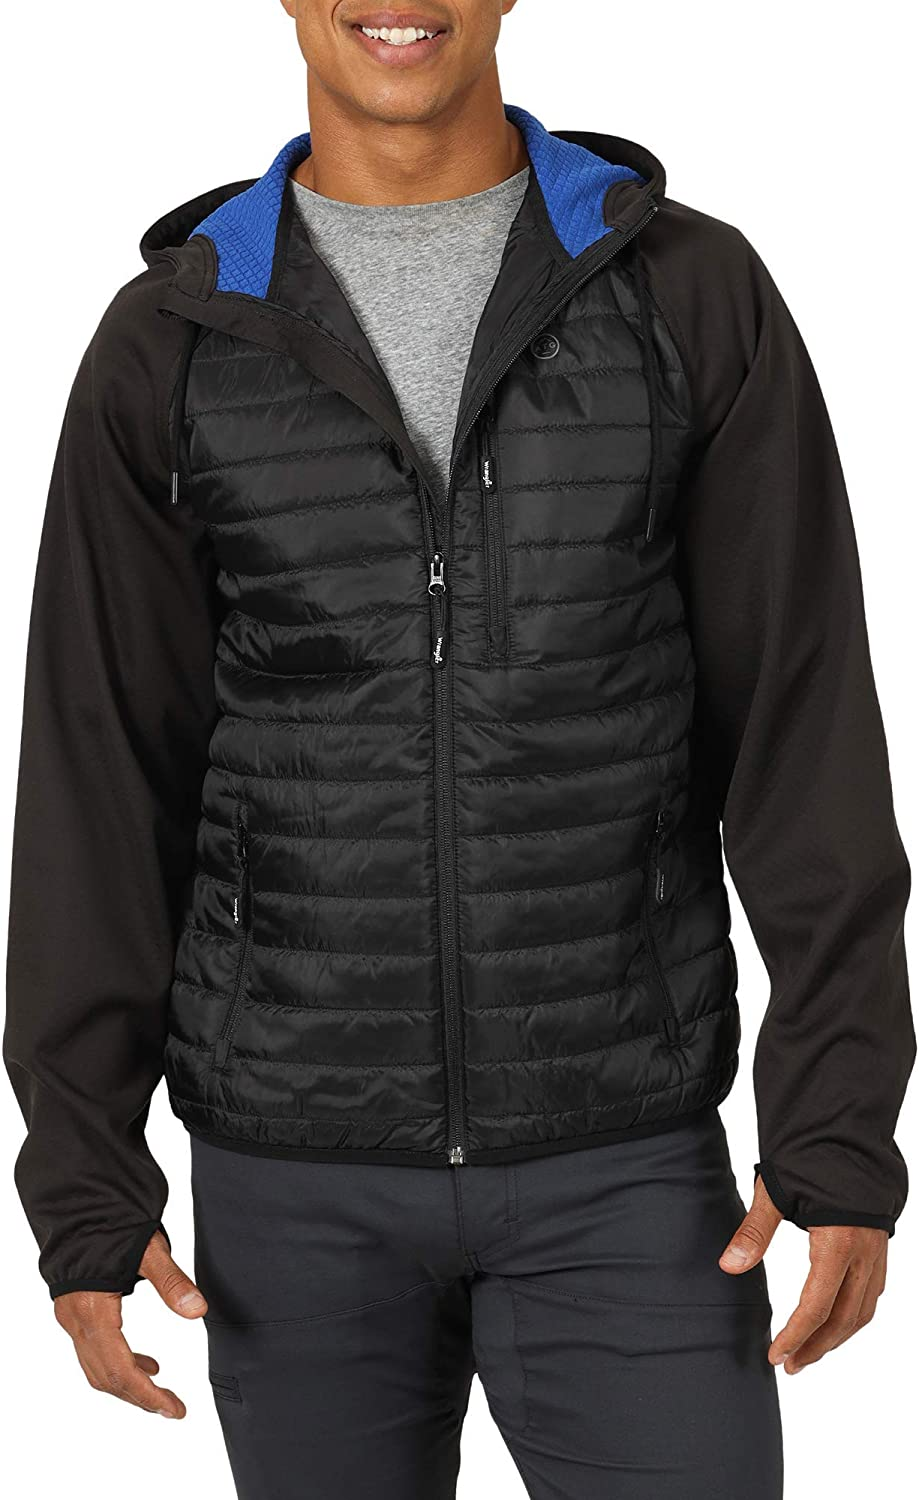 Cheap ATG by Wrangler Outrider Cheap mail order sales Jacket Men's